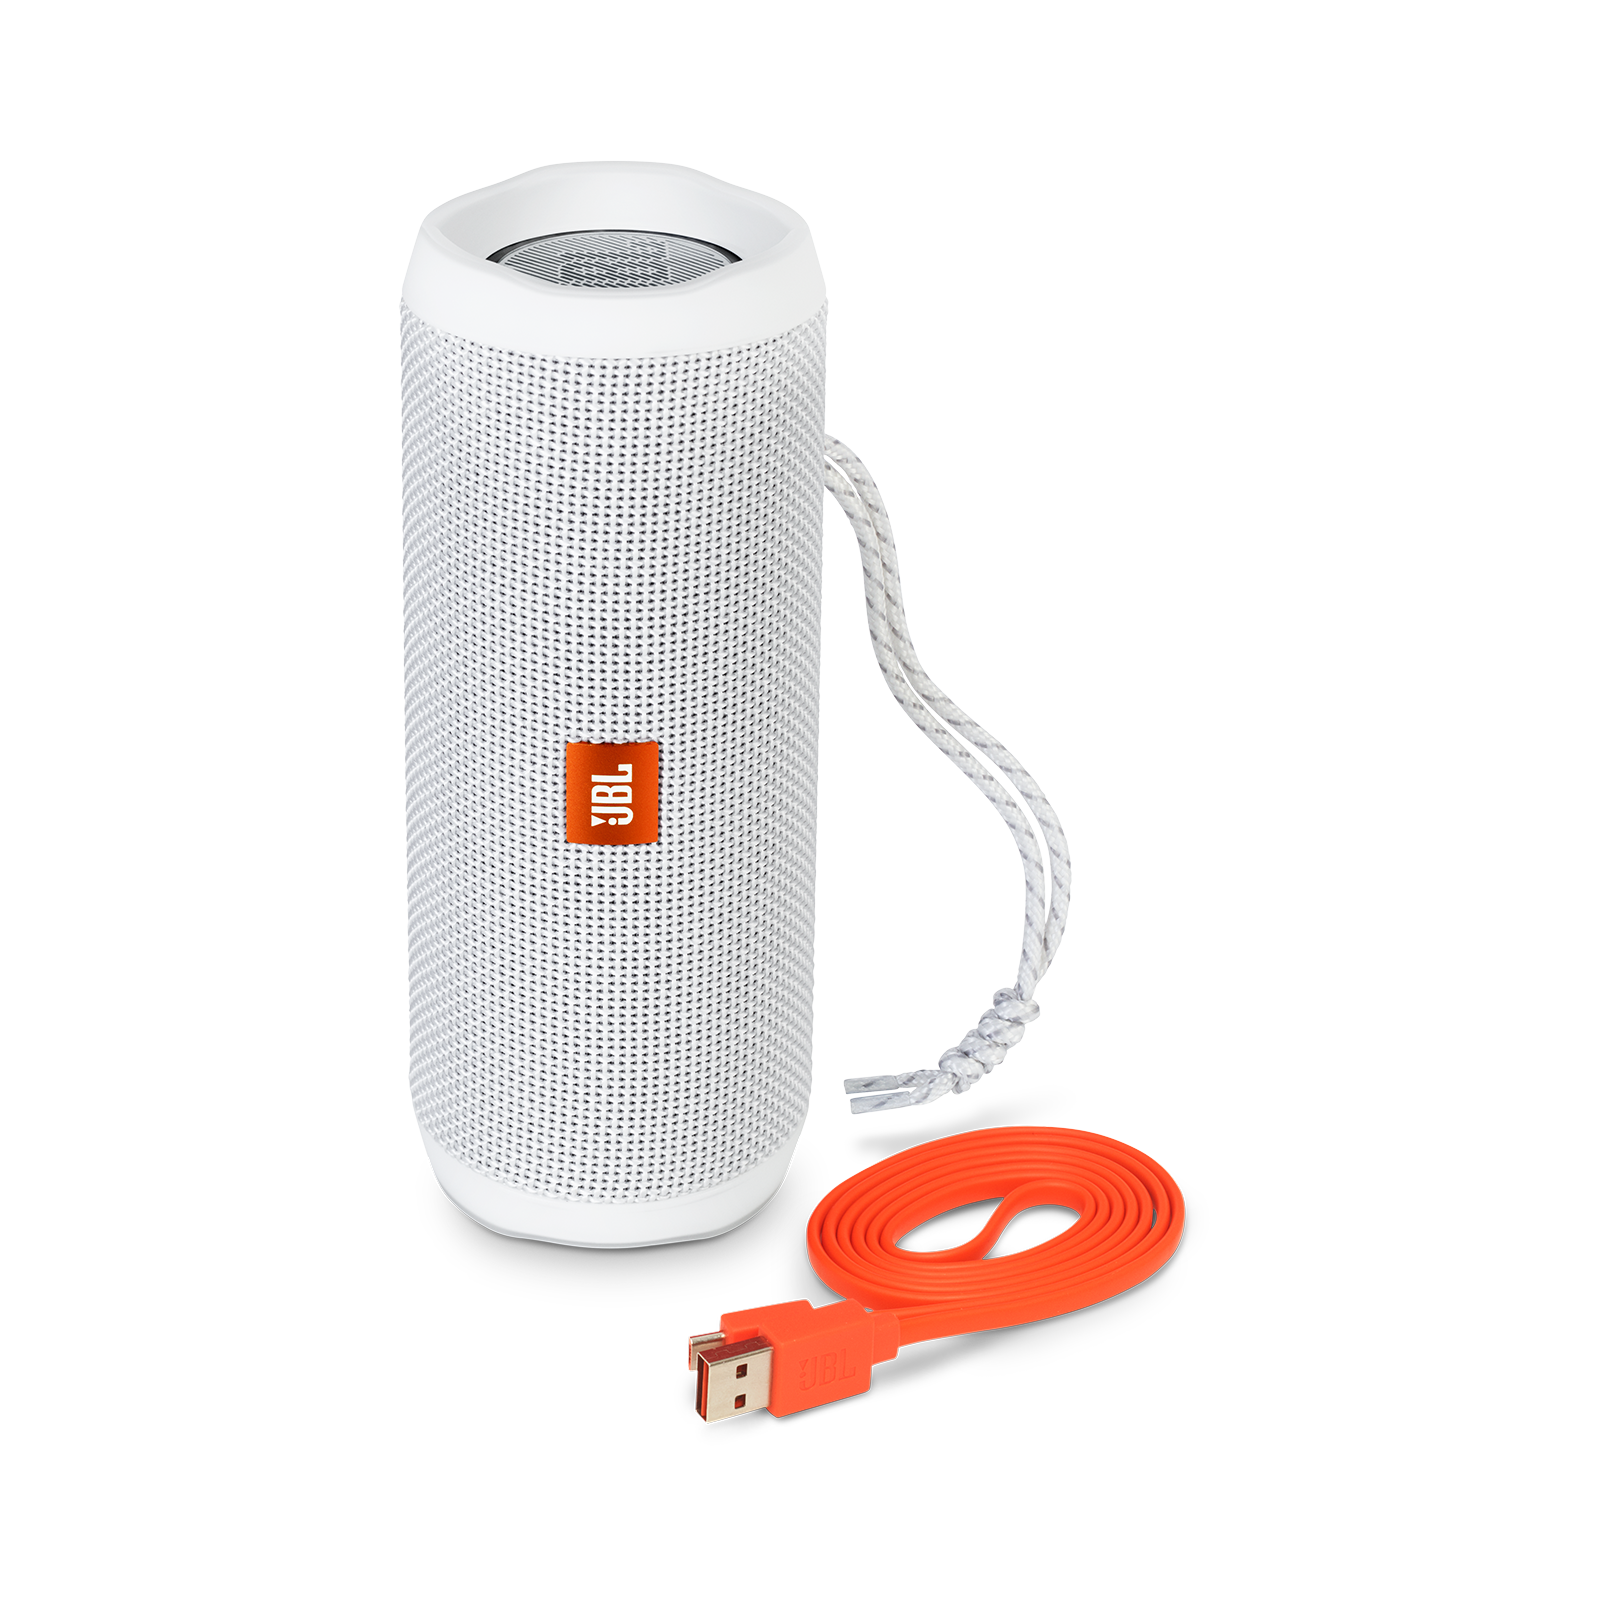 JBL Flip 4 - White - A full-featured waterproof portable Bluetooth speaker with surprisingly powerful sound. - Detailshot 1